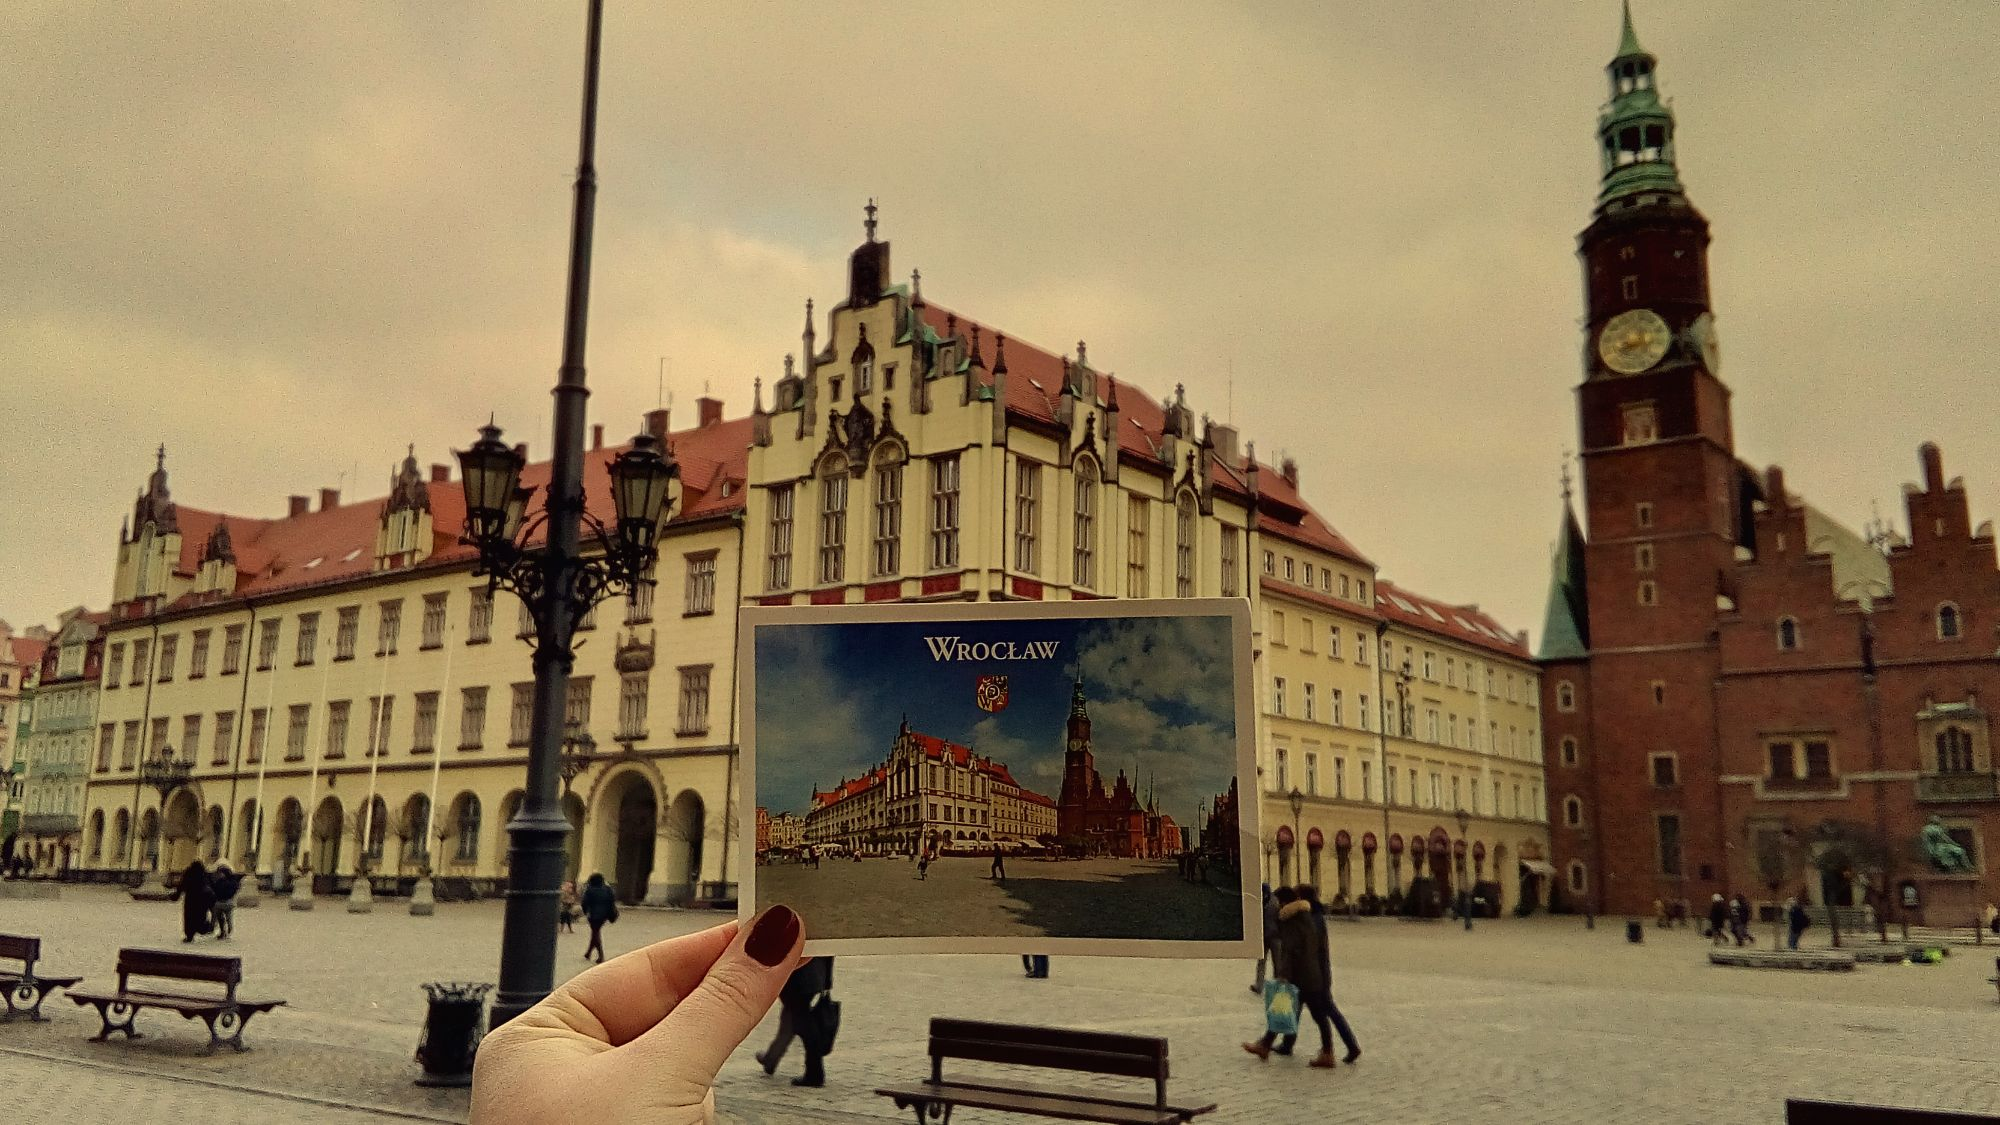 Postcard from Wroclaw